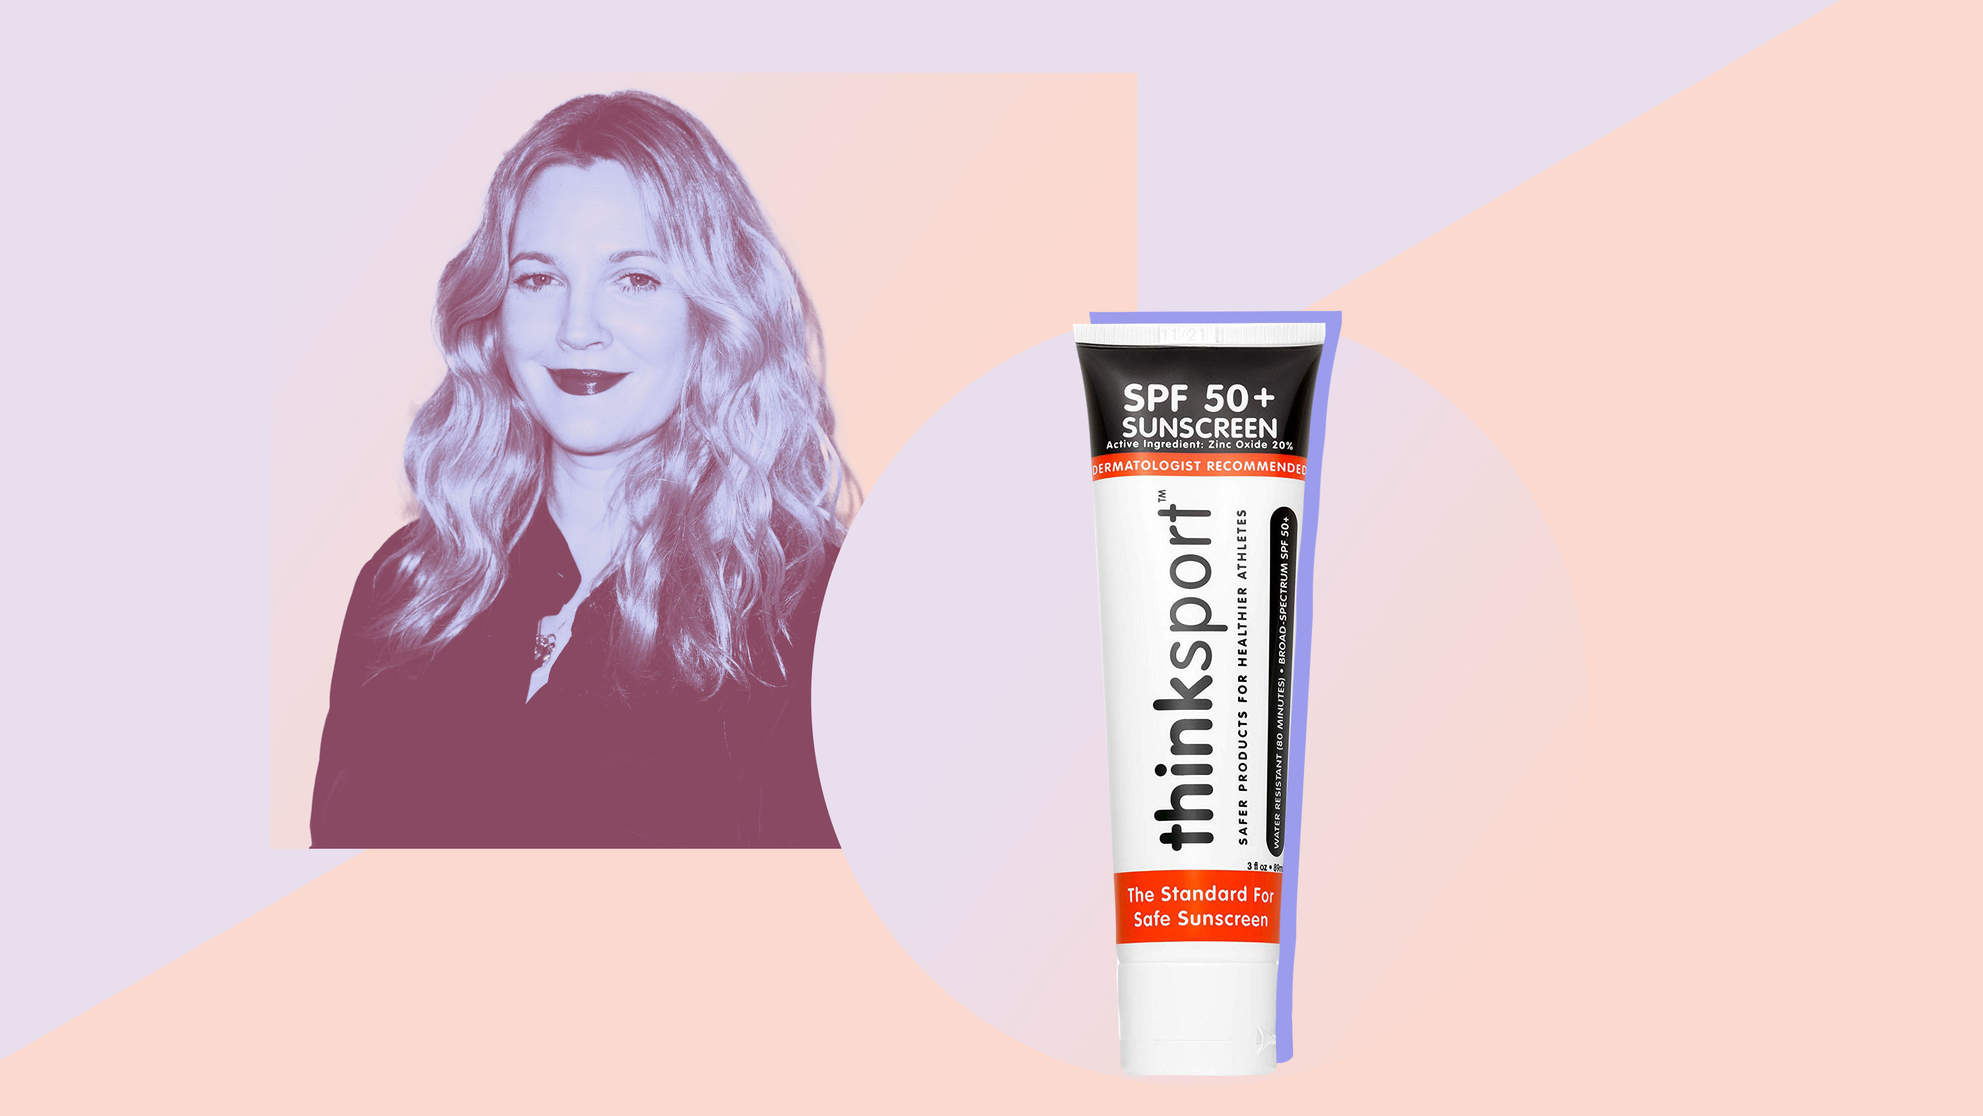 drew-barrymore-sunscreen drew-barrymore sunscreen skin dermatology woman health beauty shopping